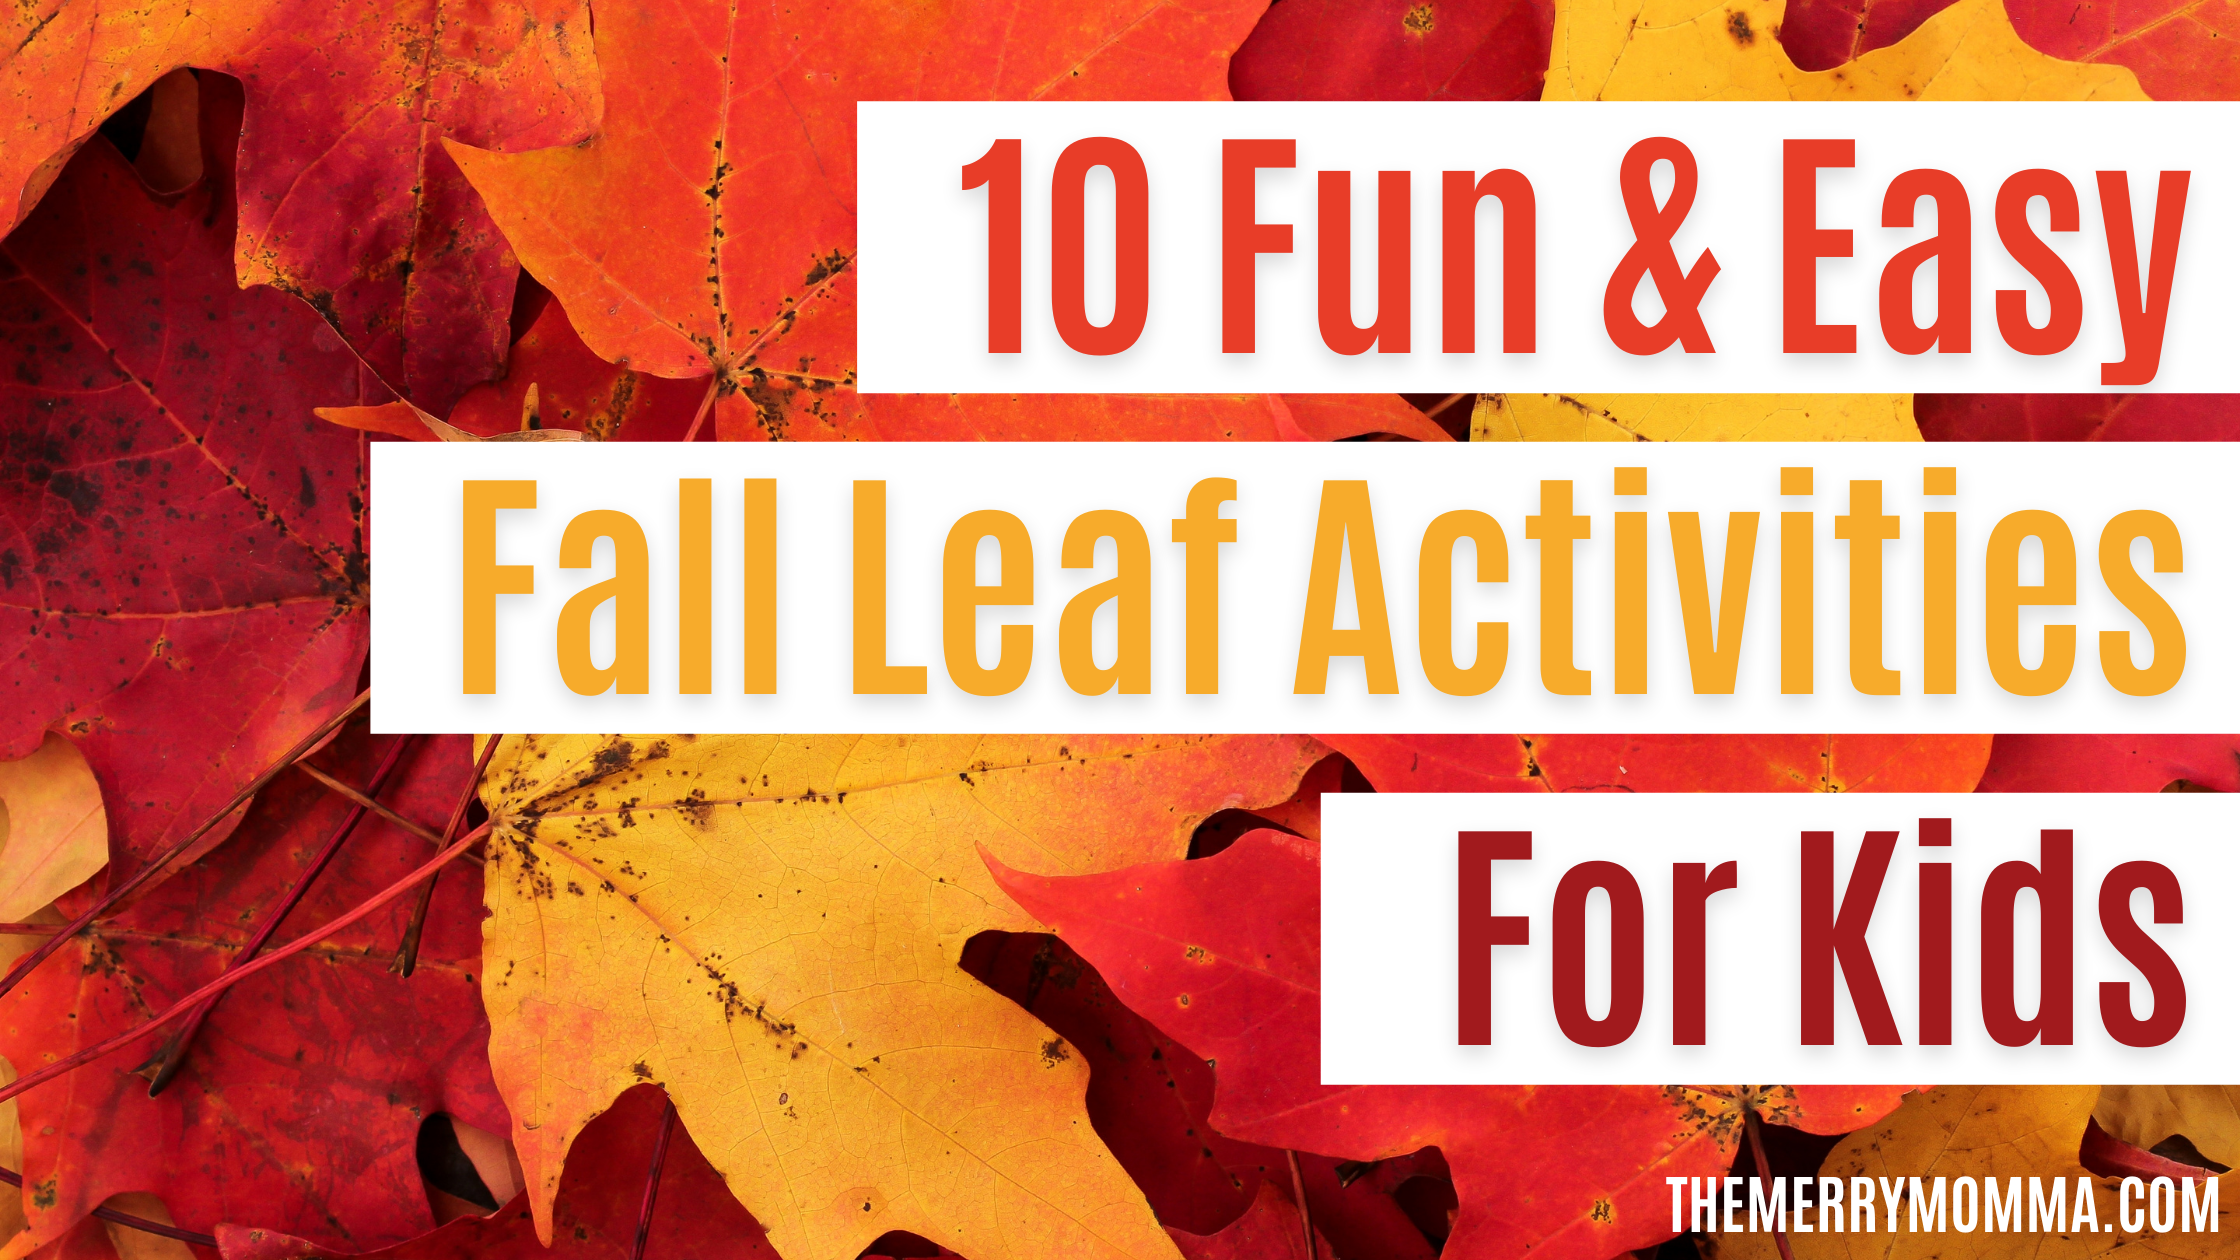 10 Fun & Easy Fall Leaf Activities for Kids | The Merry Momma